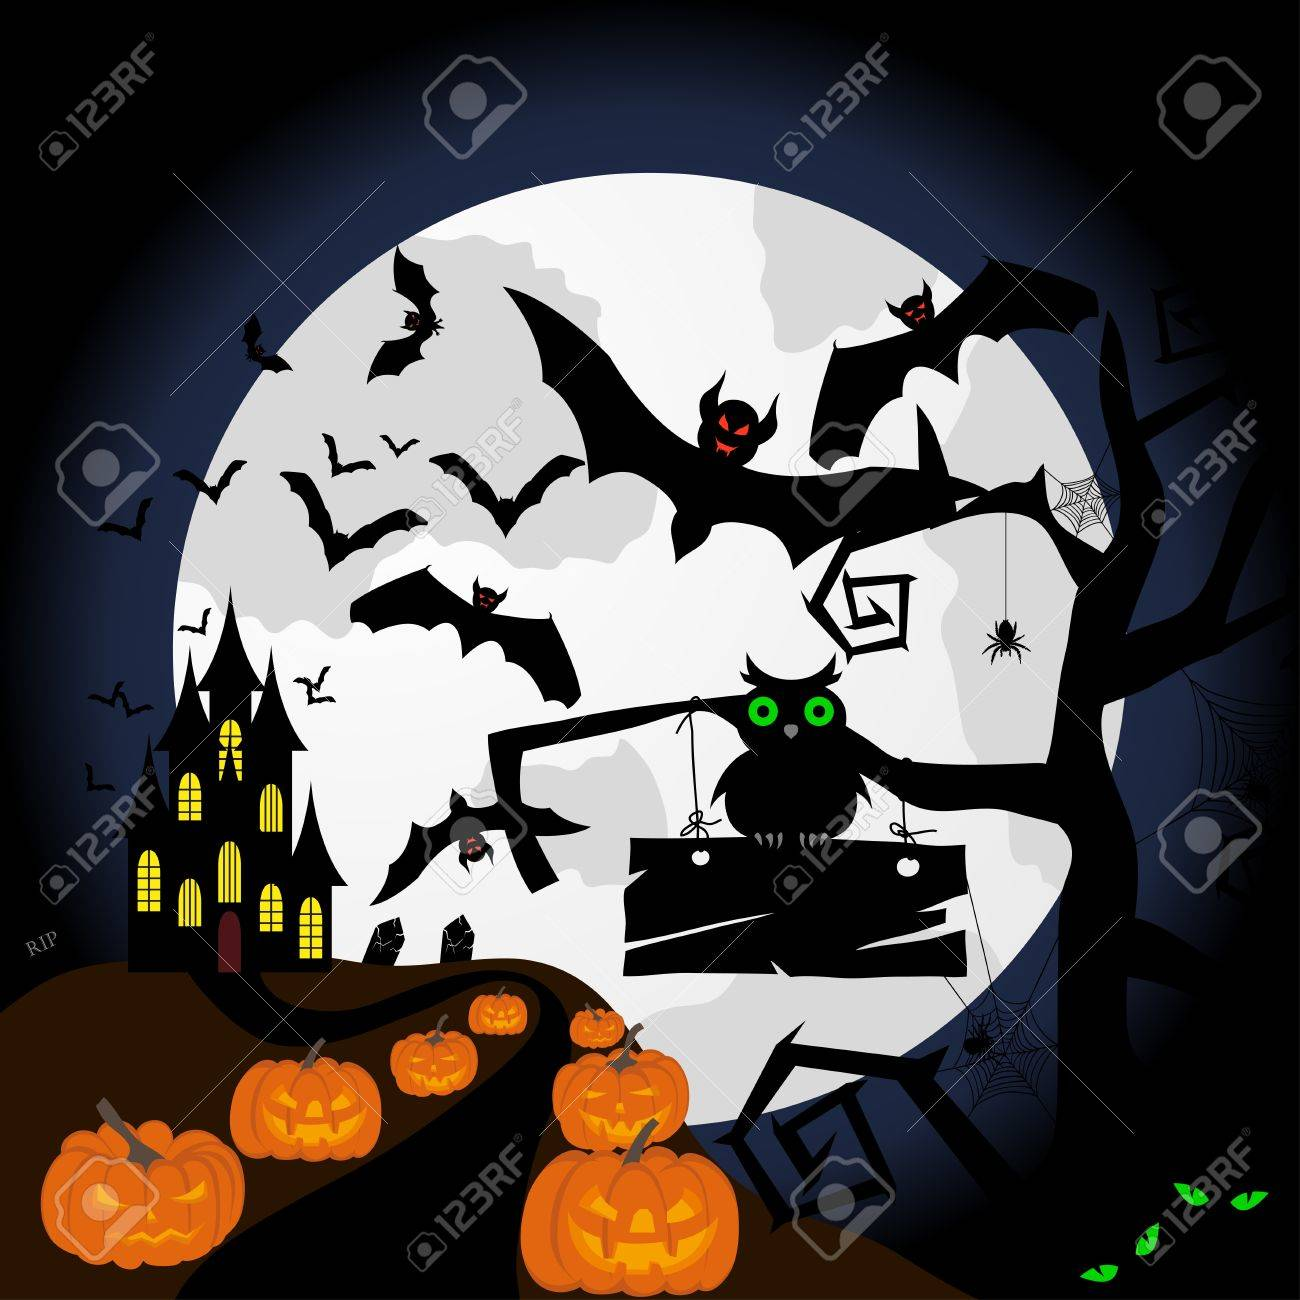 Happy halloween theme greeting card. illustration. Stock Vector - 15315386